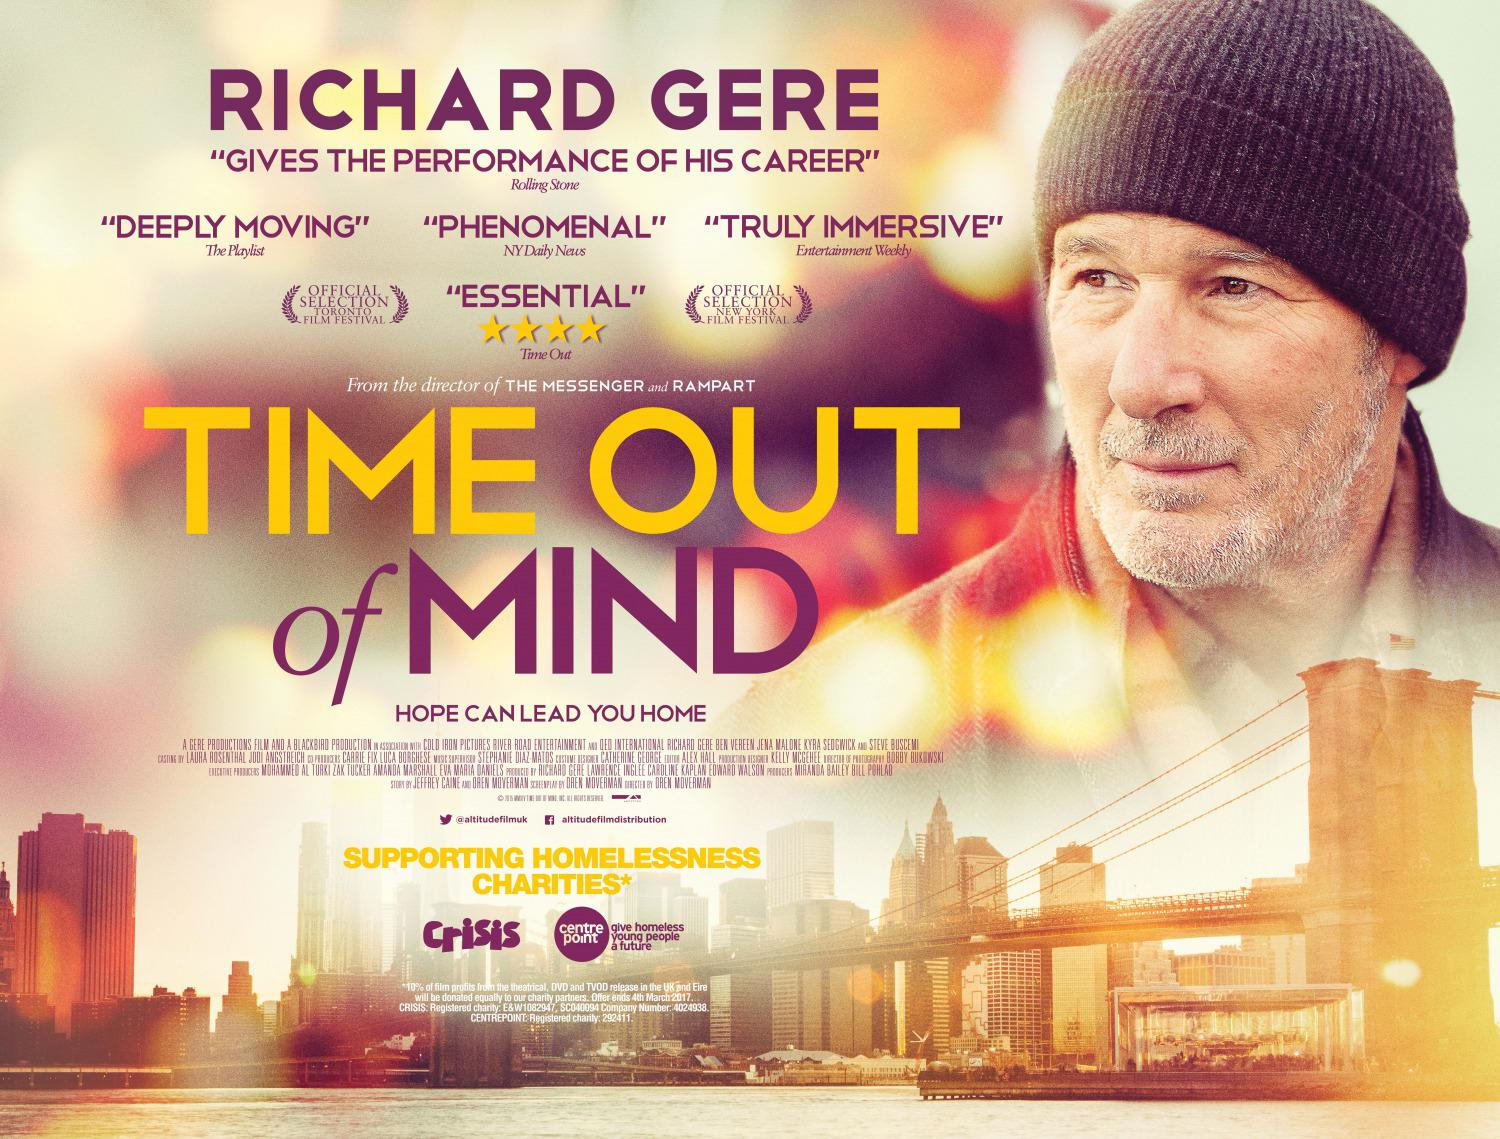 Time out of Mind - Gli Invisibili - Richard Gere - Hope can lead your Home